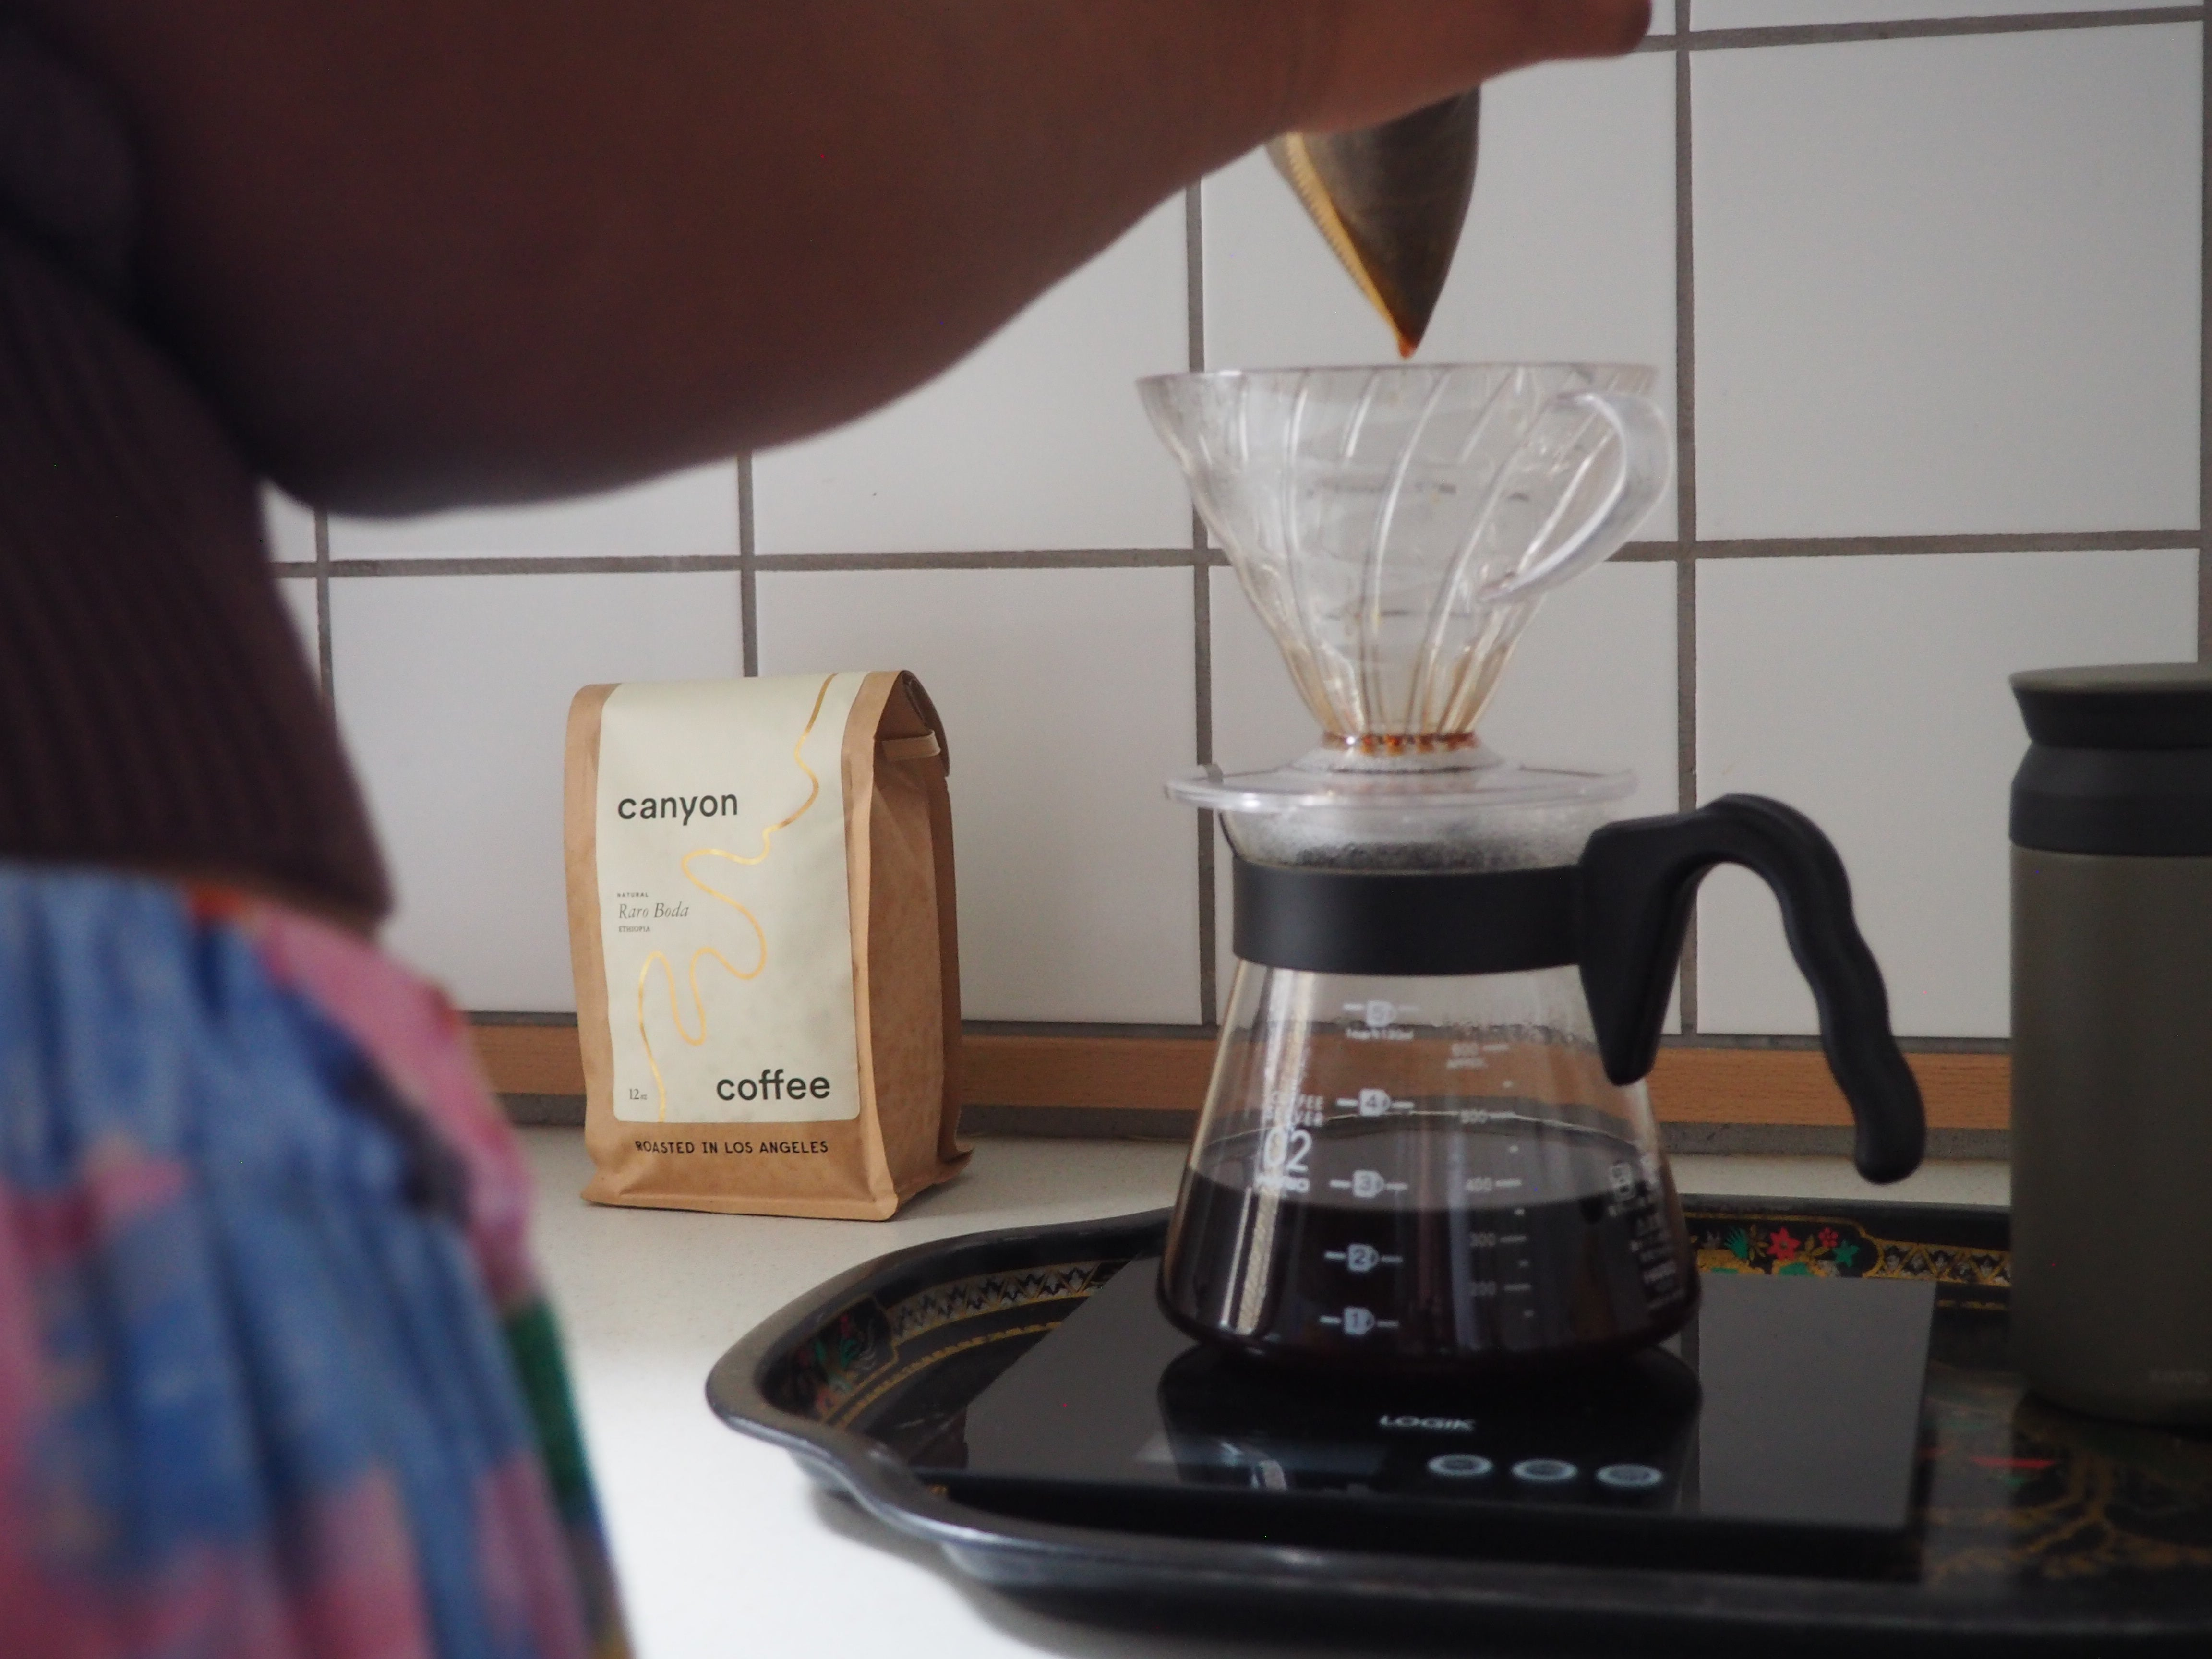 Tara Thomas brewing a pour over of Canyon Coffee in her kitchen in Copenhagen, 2020